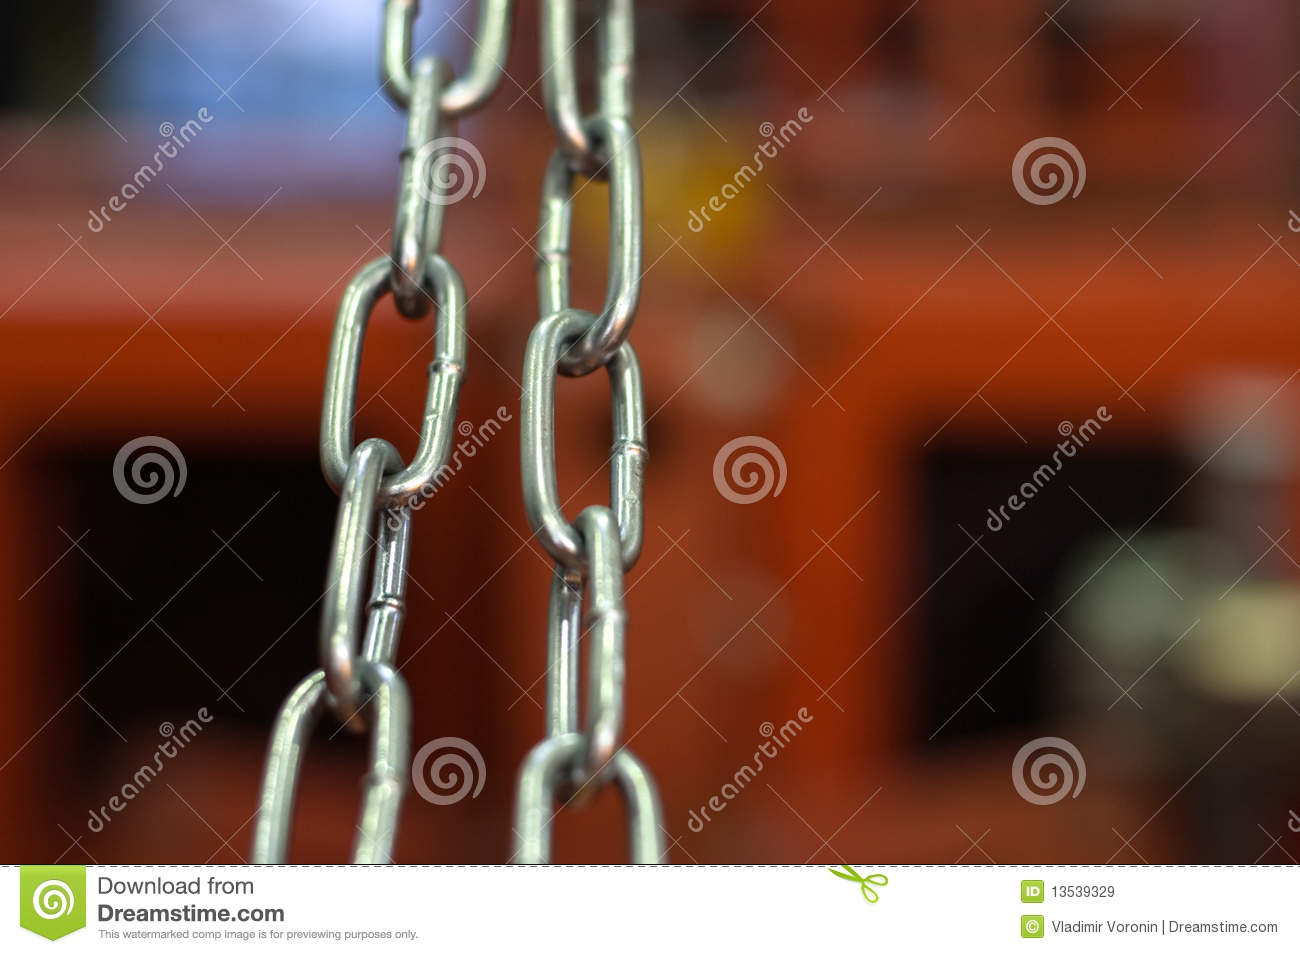 Links of a metal chain close up